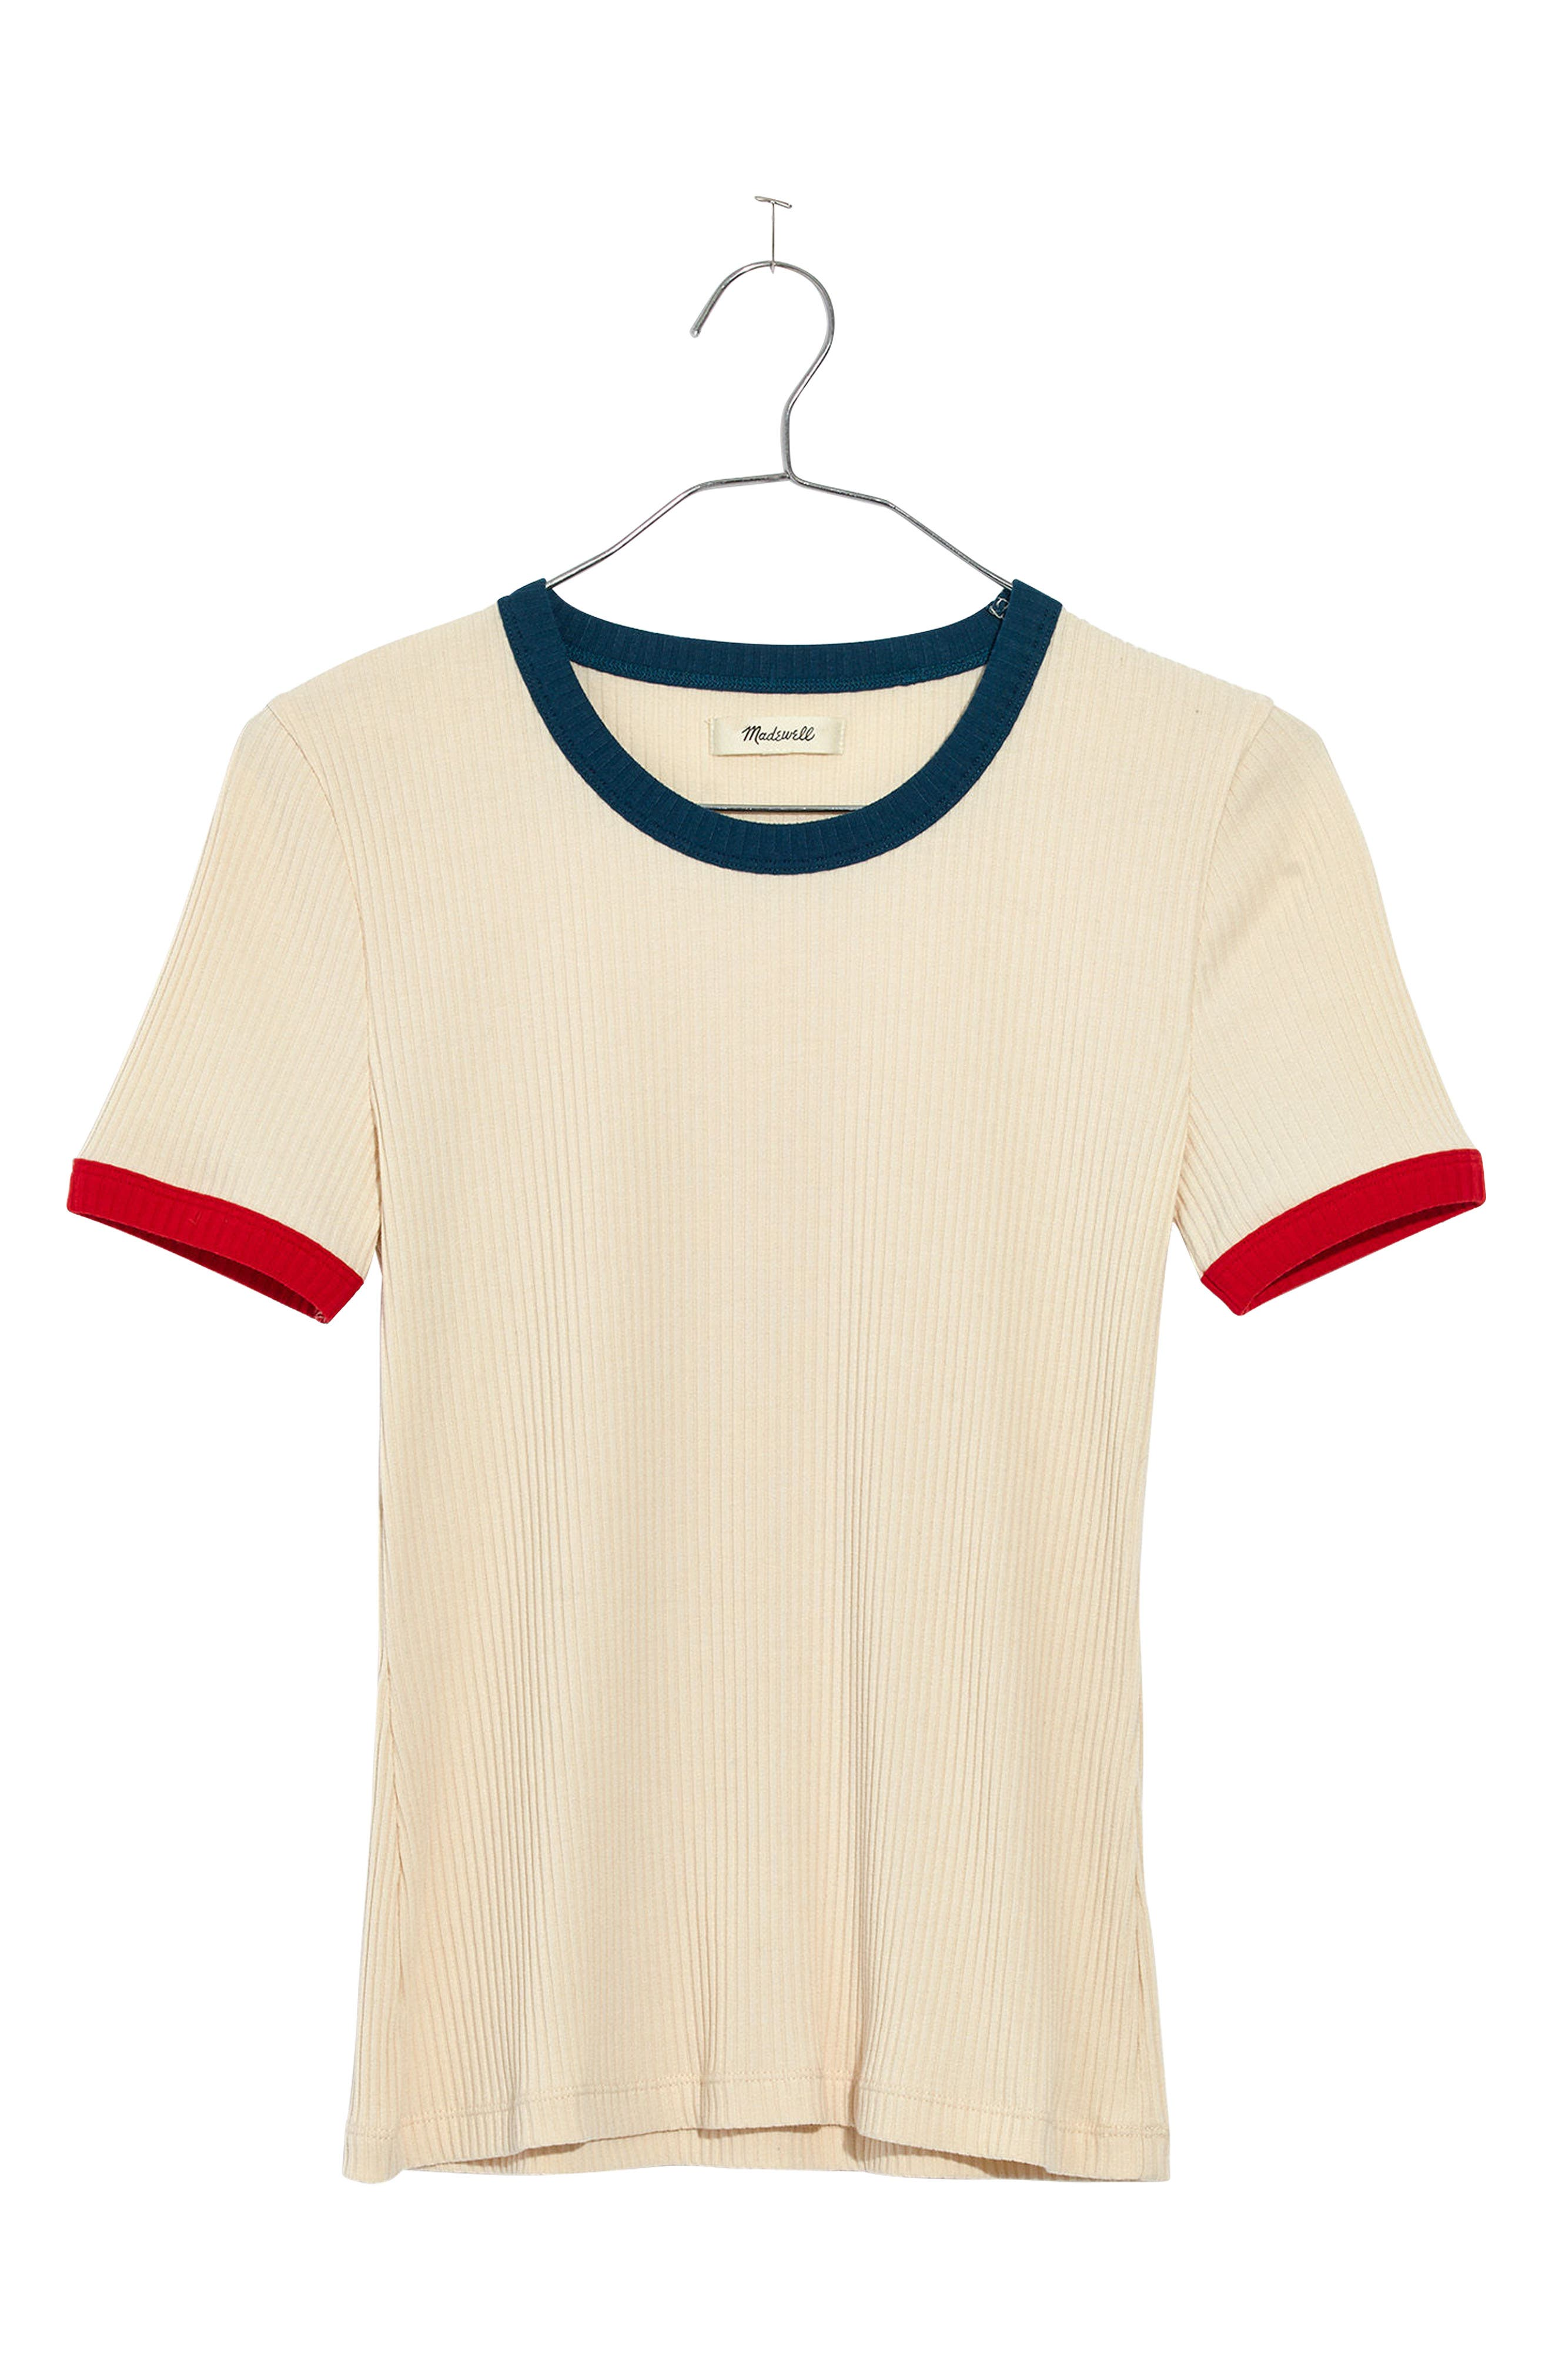 Colorblock Ringer Tee,                             Alternate thumbnail 4, color,                             250